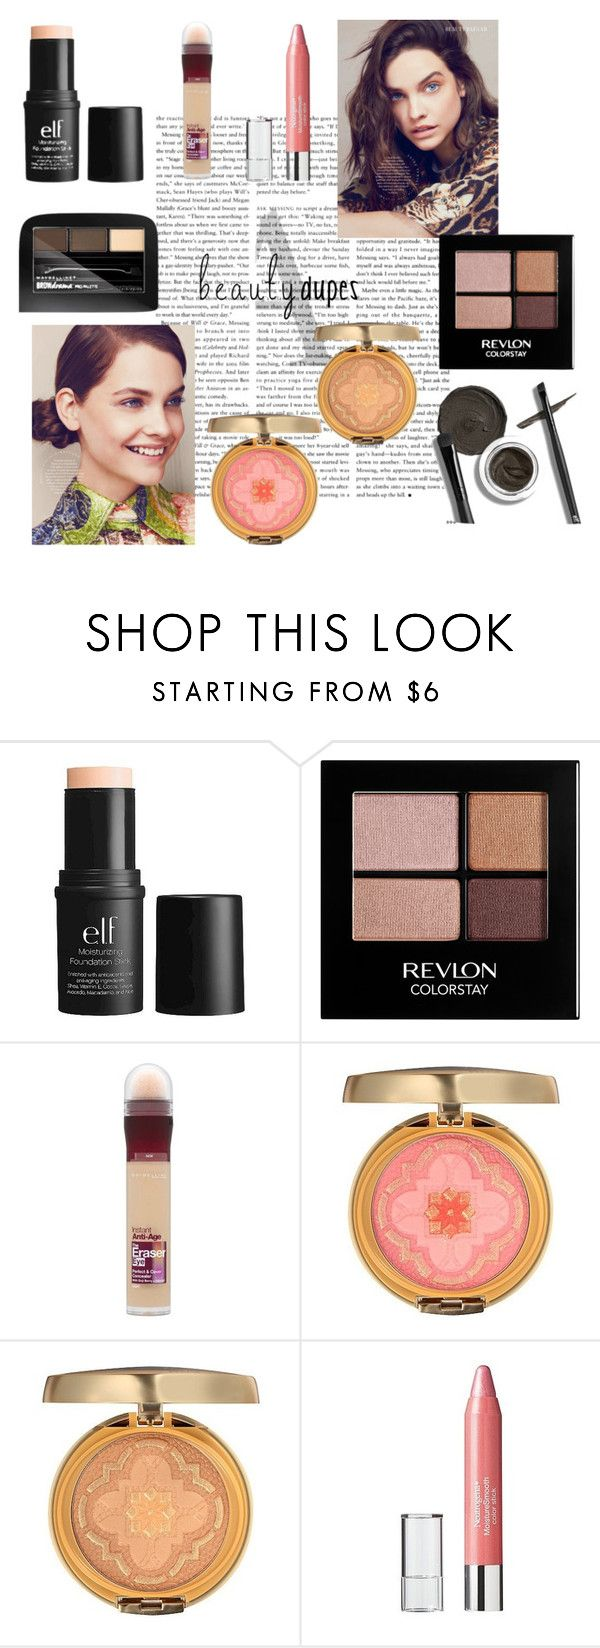 """""""Drugstore treasure"""" by seek-couture ❤ liked on Polyvore featuring beauty, ELF Cosmetics, e.l.f., Revlon, Maybelline, Physicians Formula, Neutrogena and beautydupes"""